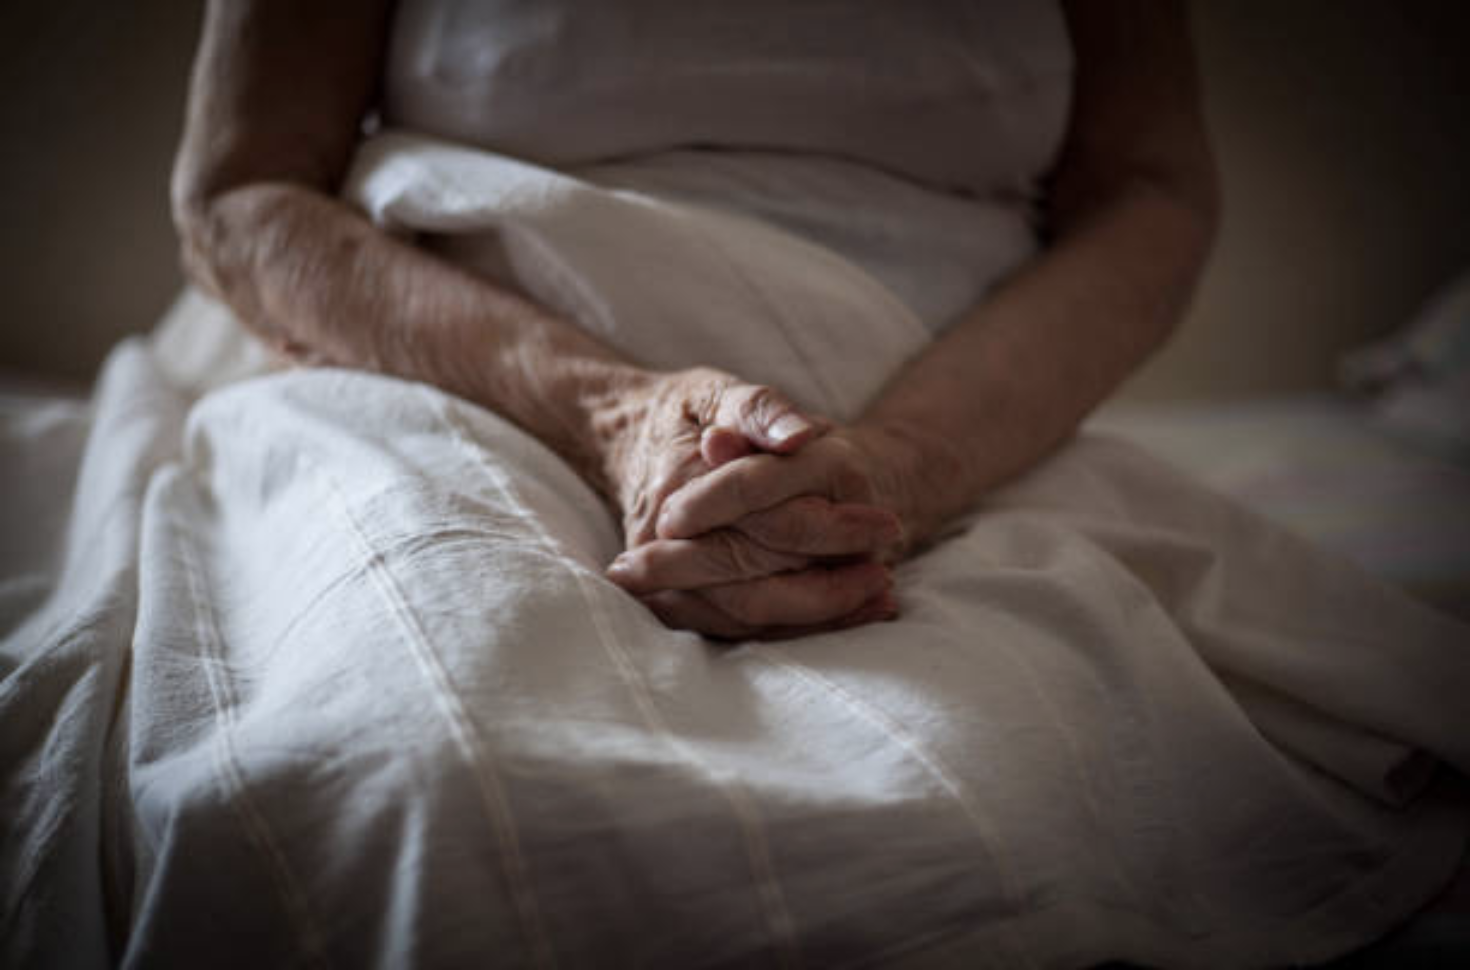 Nearly half of Mecklenburg's COVID-19 deaths are connected to long-term care facilities